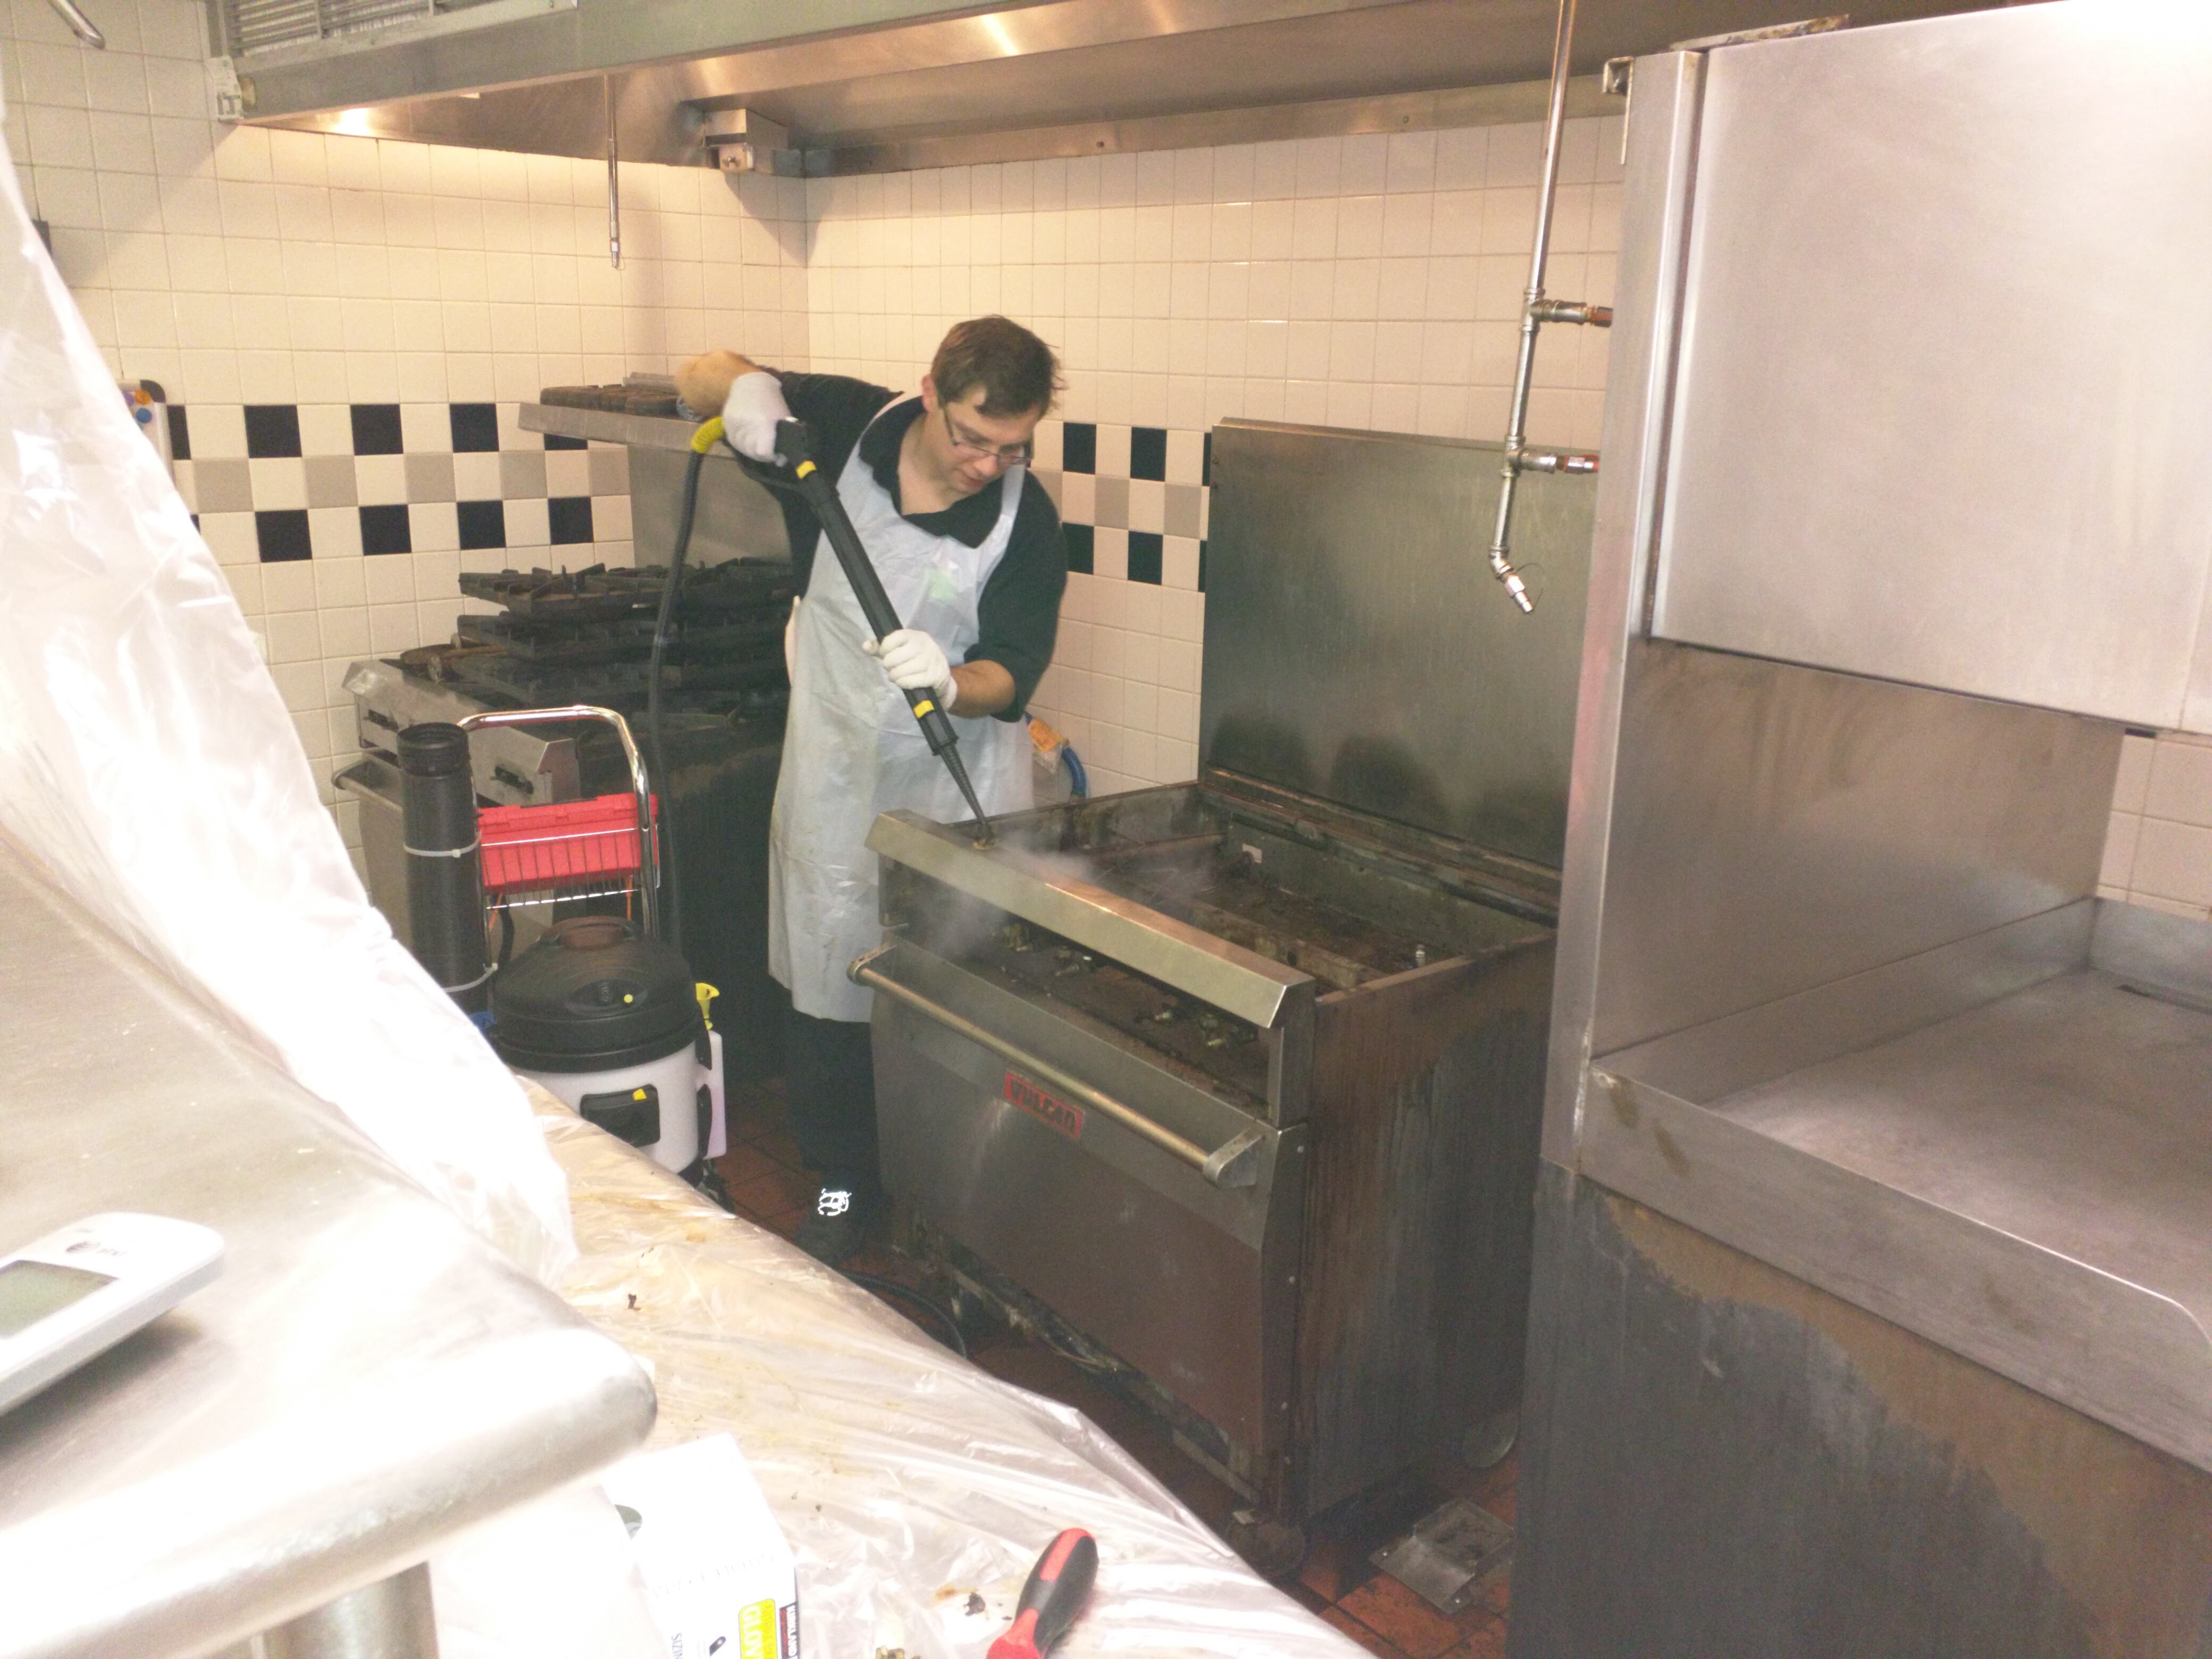 Kitchen Cleaning NC - Commercial Deep Cleaning Services